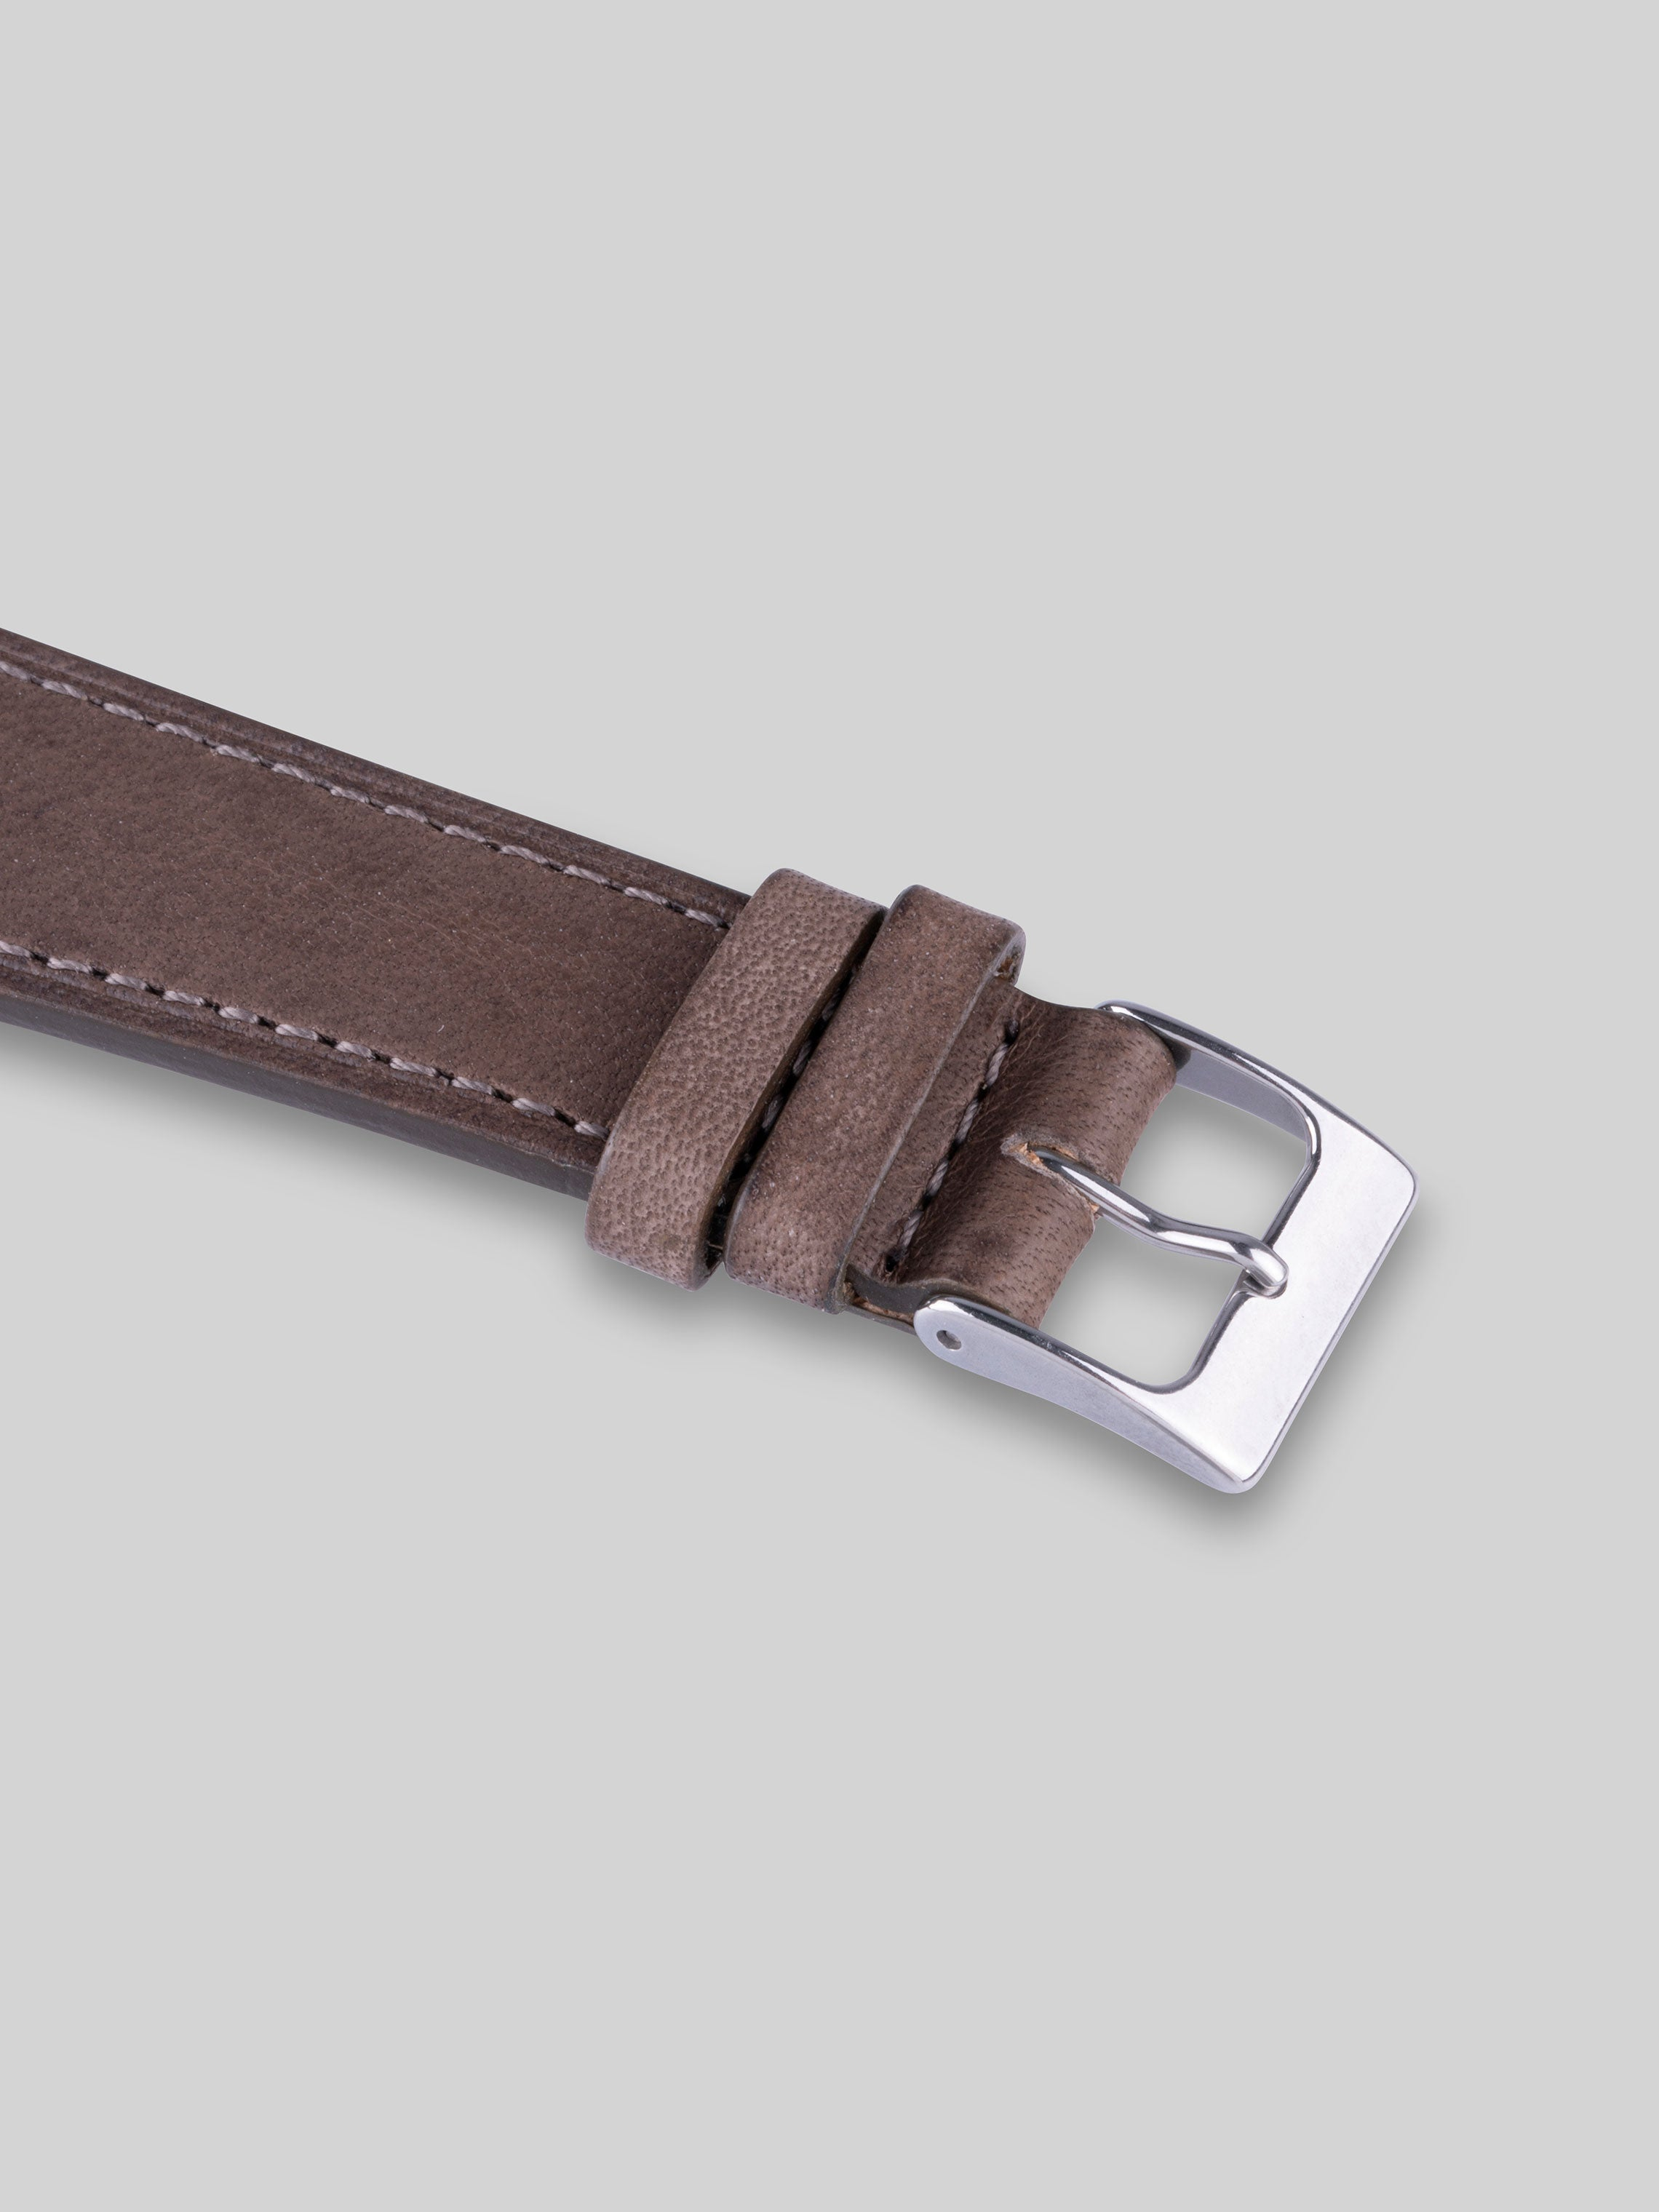 Smooth Calfskin Watch Strap - Stampede